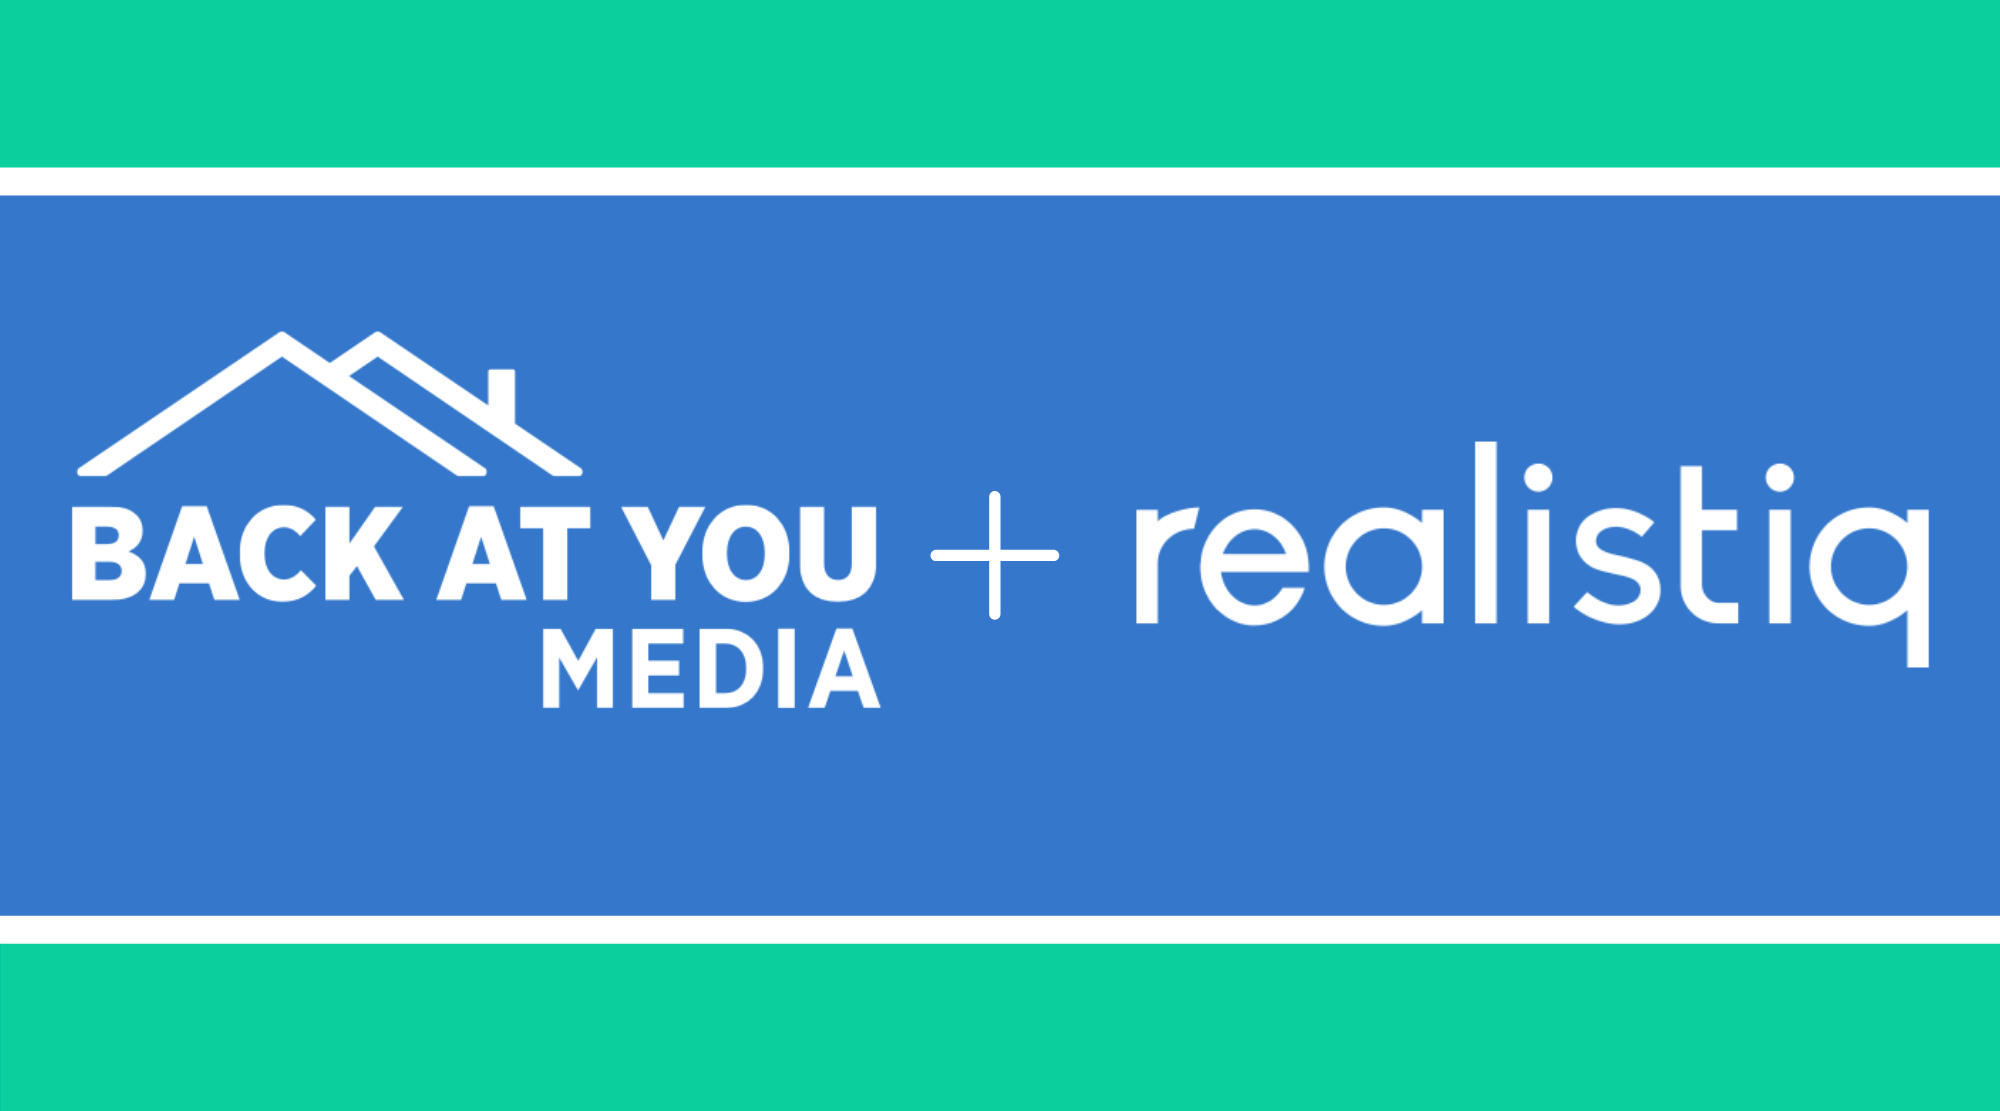 It's Official! Back At You + Realistiq